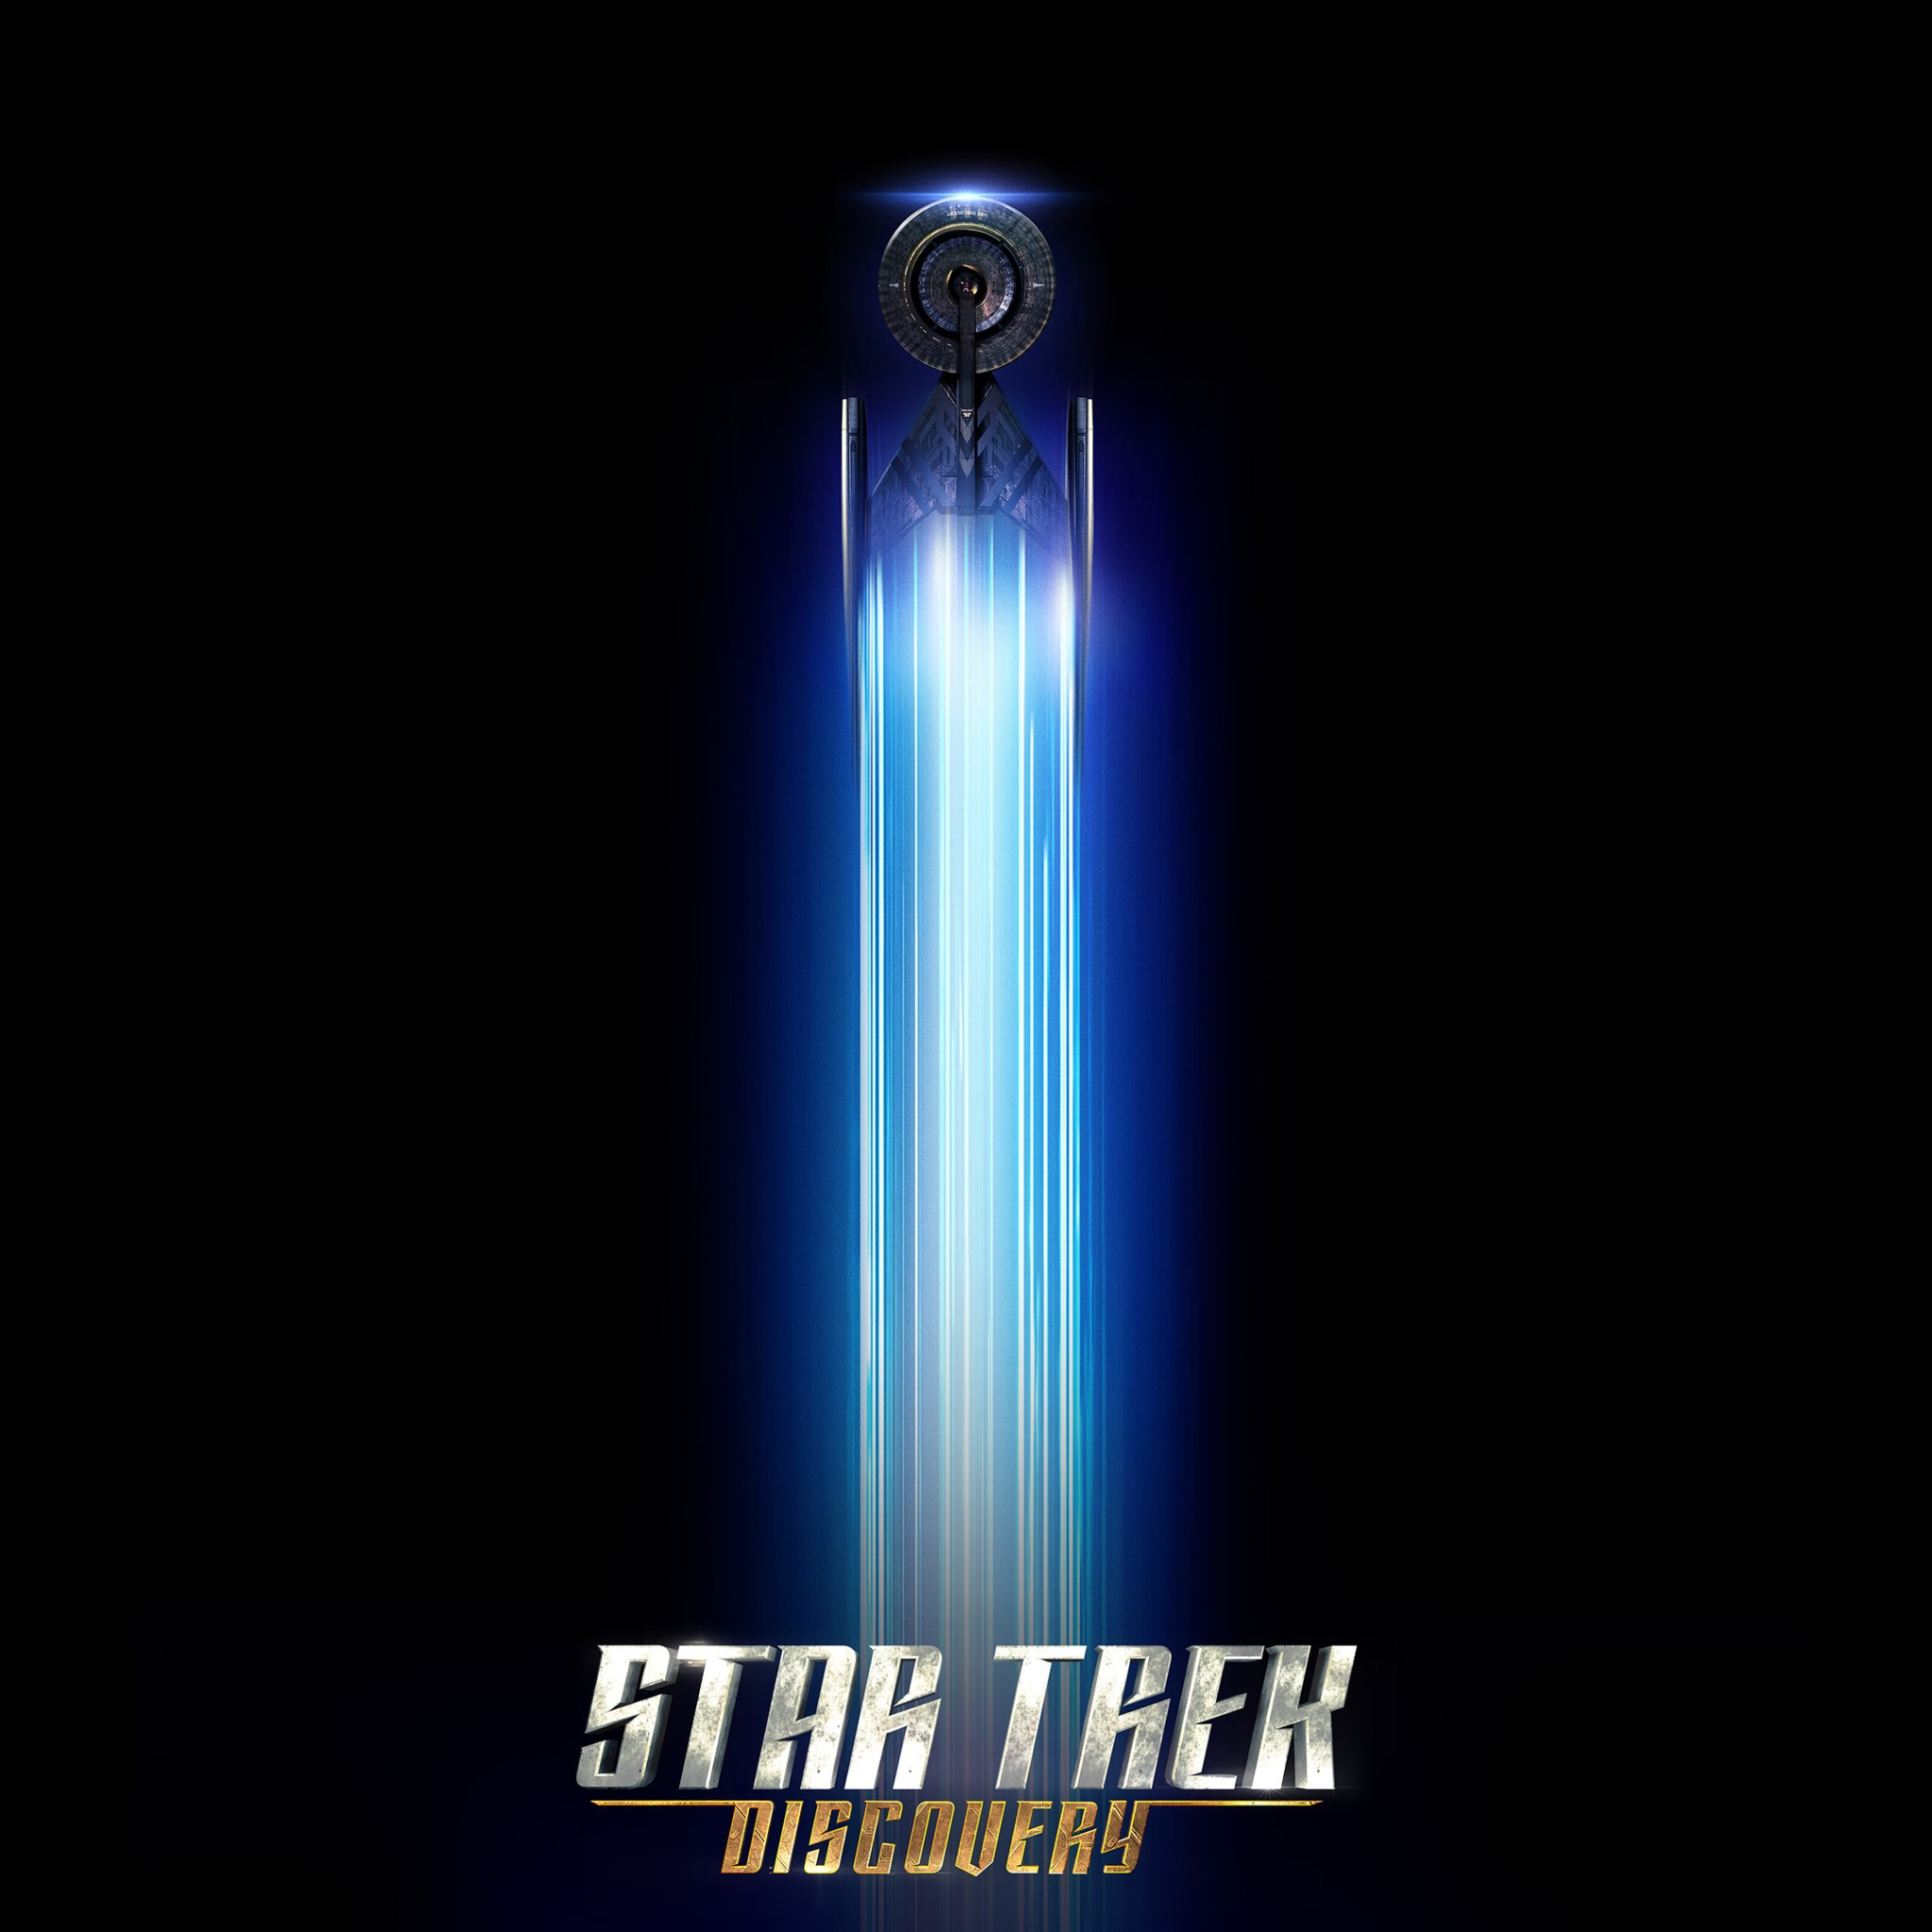 Star Trek Discovery 4k Retina Ipad Wallpaper The Hot